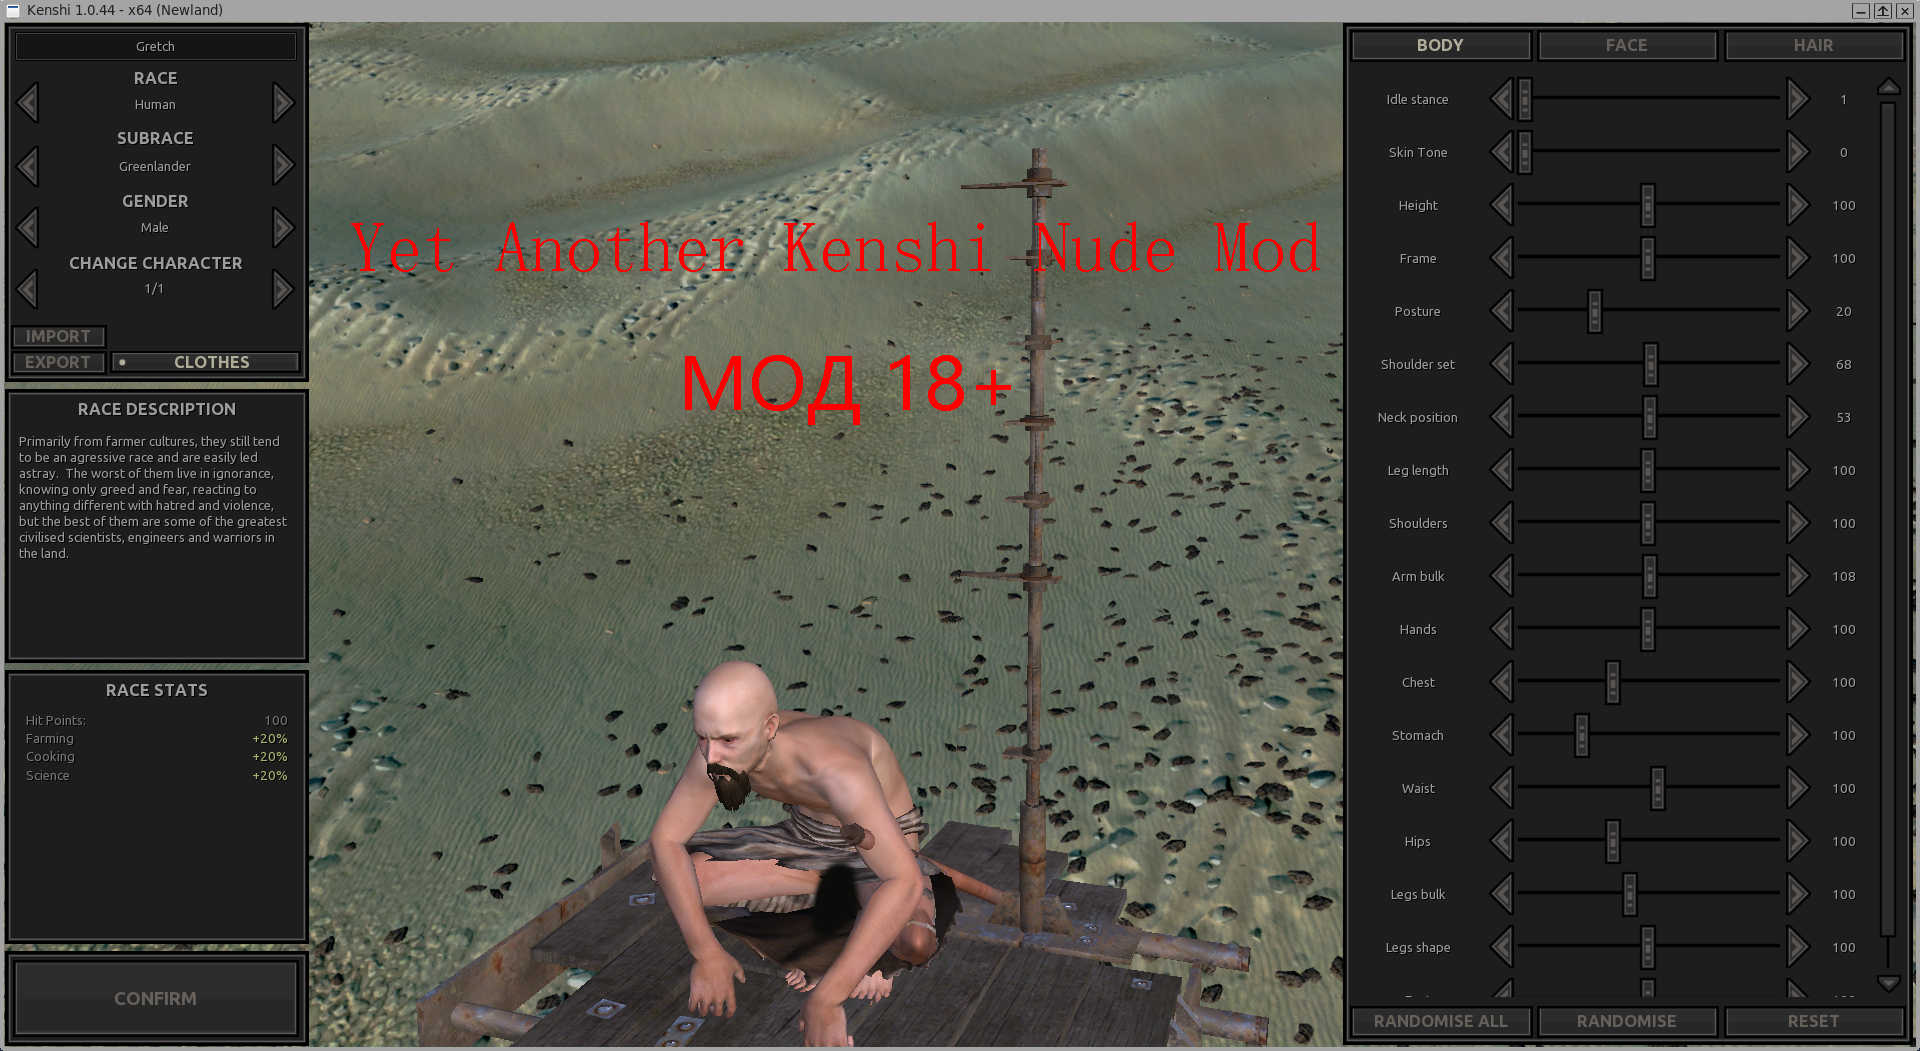 Yet Another Kenshi Nude Mod (MULTI) 18+